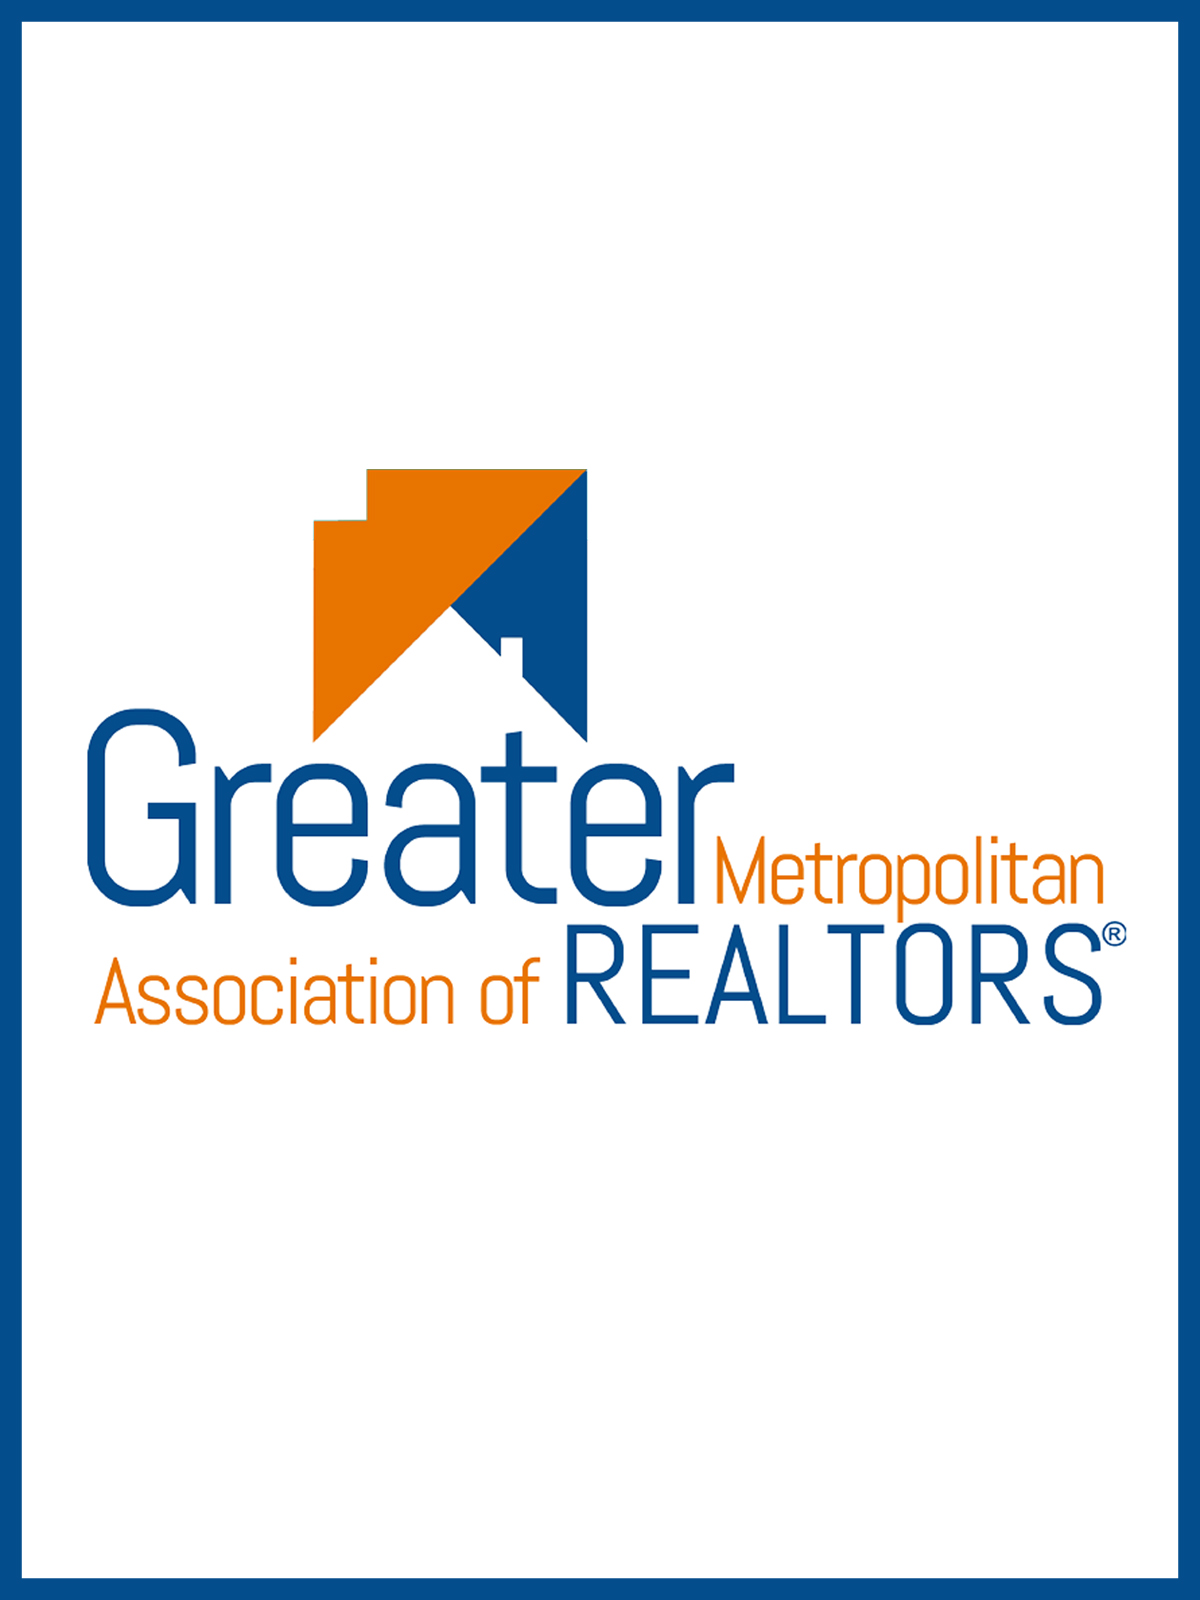 Greater Metropolitan Association of Realtors